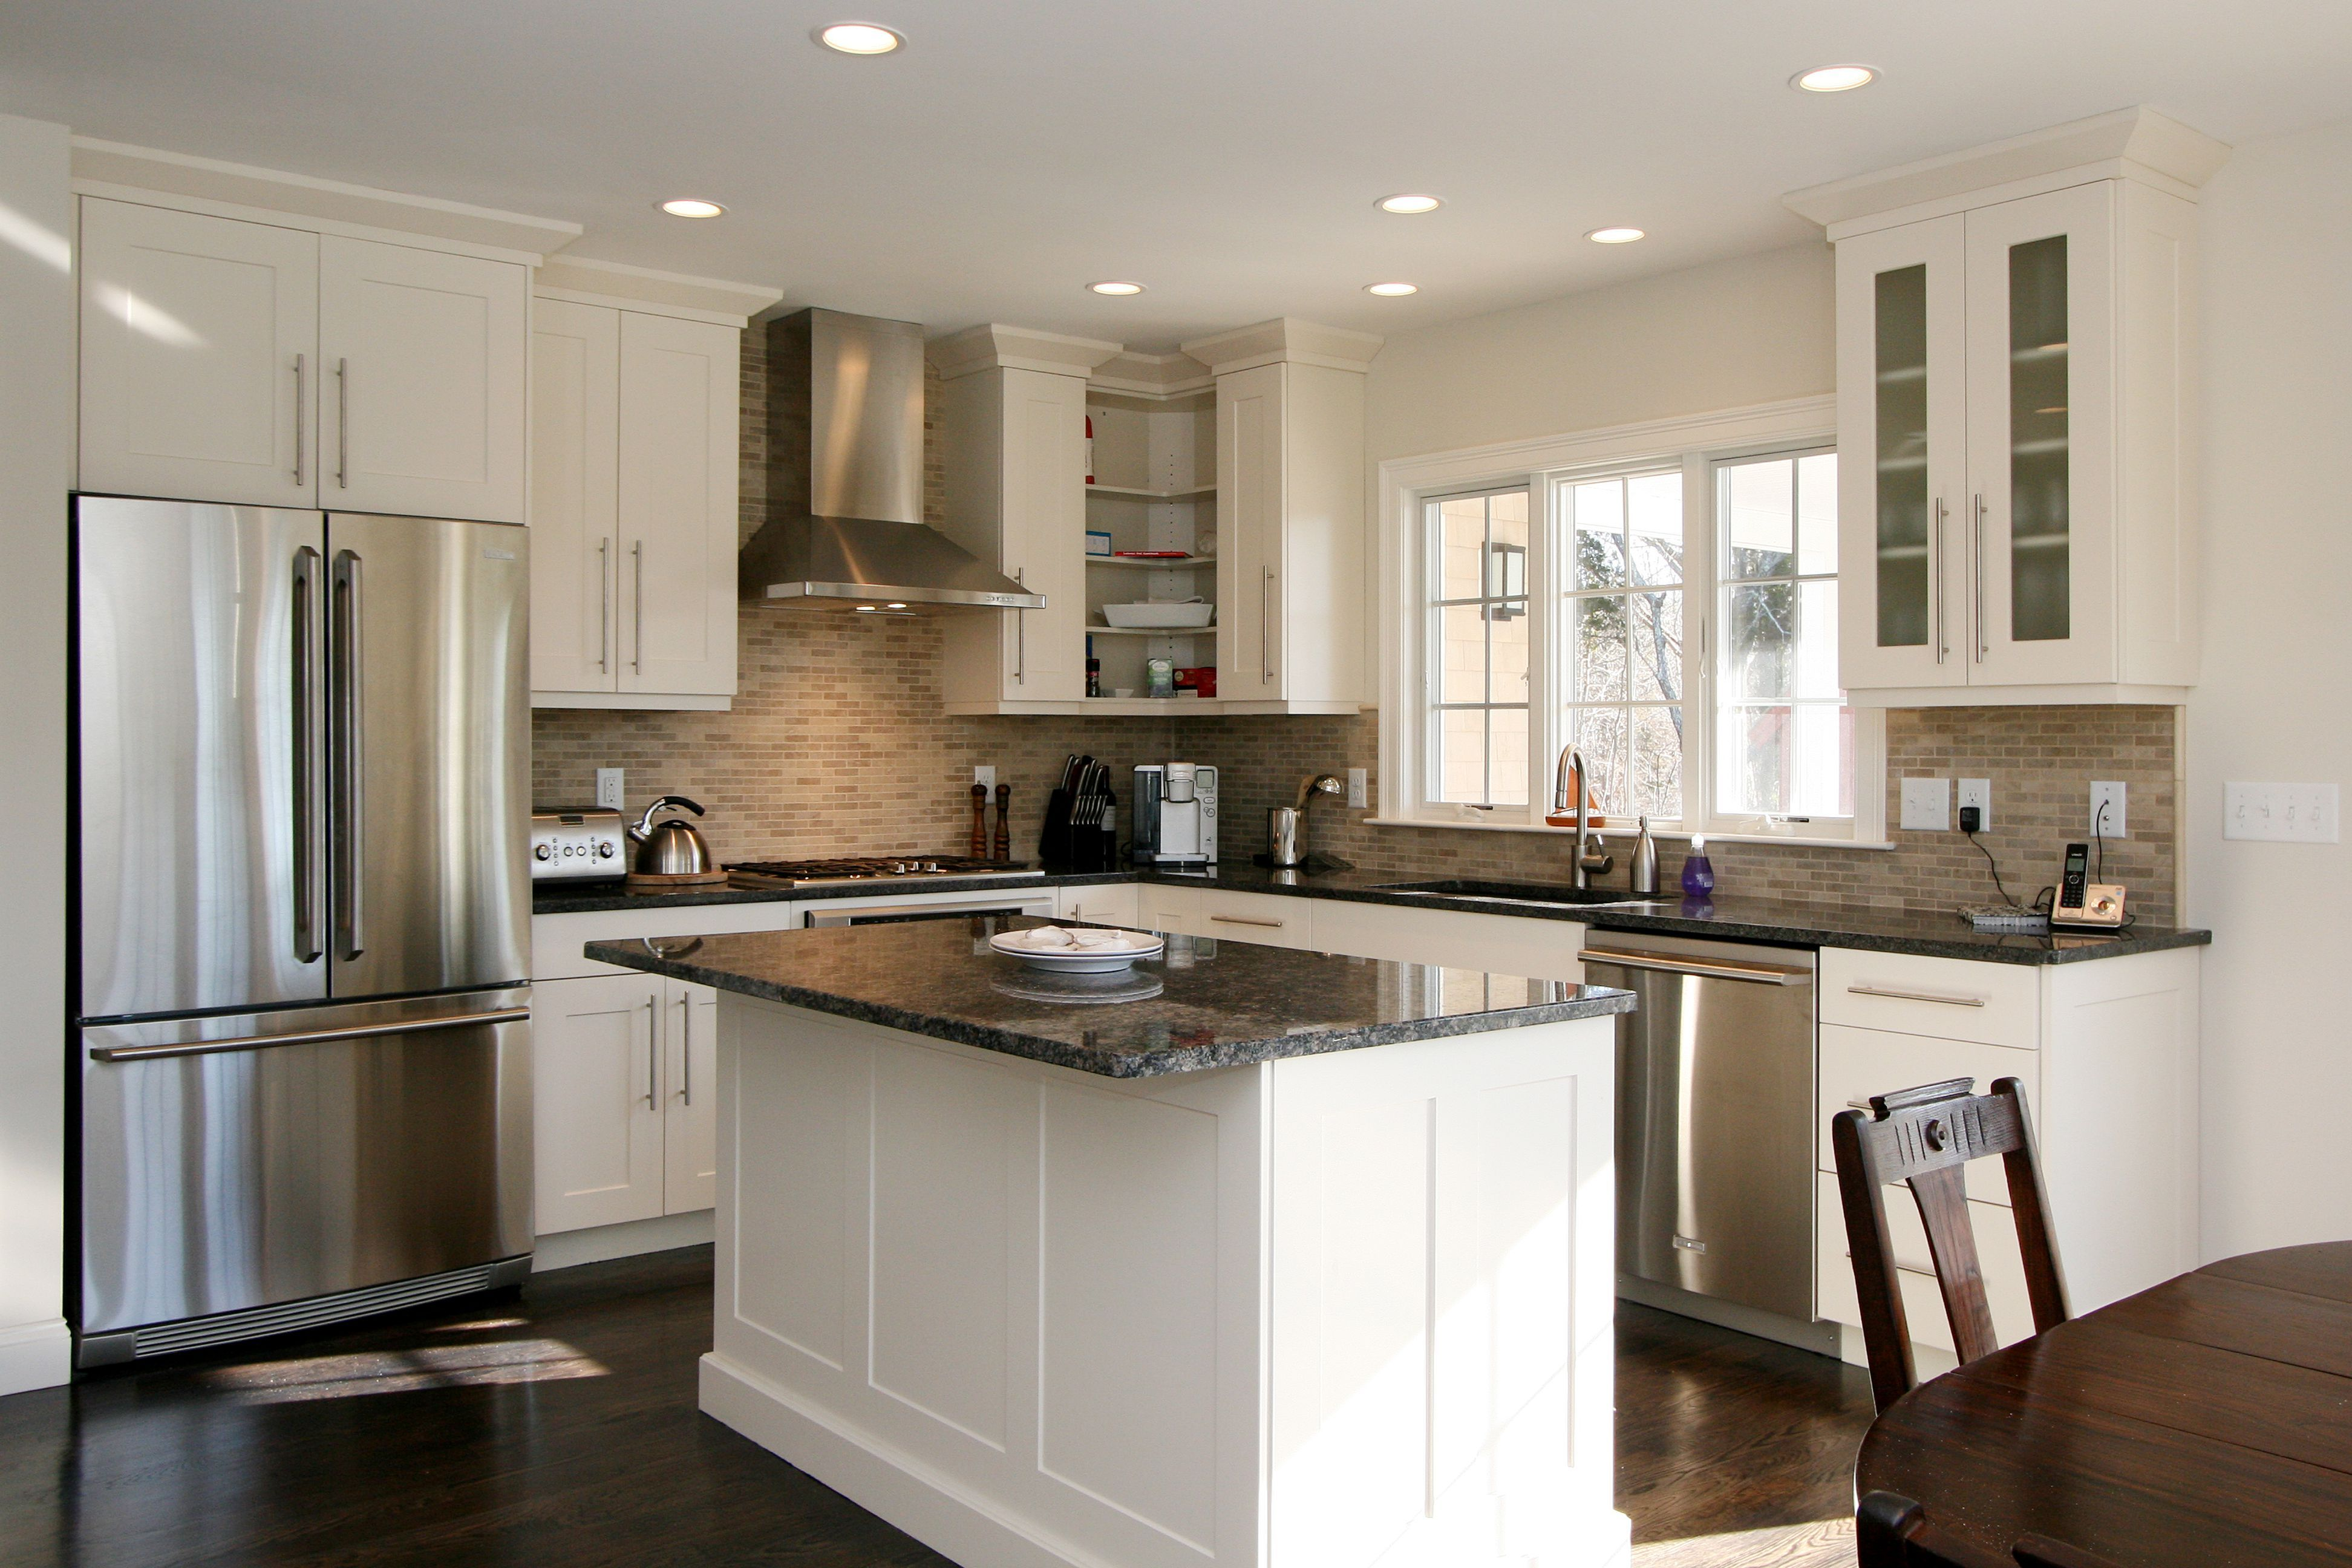 kitchen-color-ideas-with-white-cabinets-Kitchen-Organization-Categories-Bread-Loaf-Pans-Flatware-Roa…  | Small kitchen layouts, Kitchen layout, Kitchen remodel small